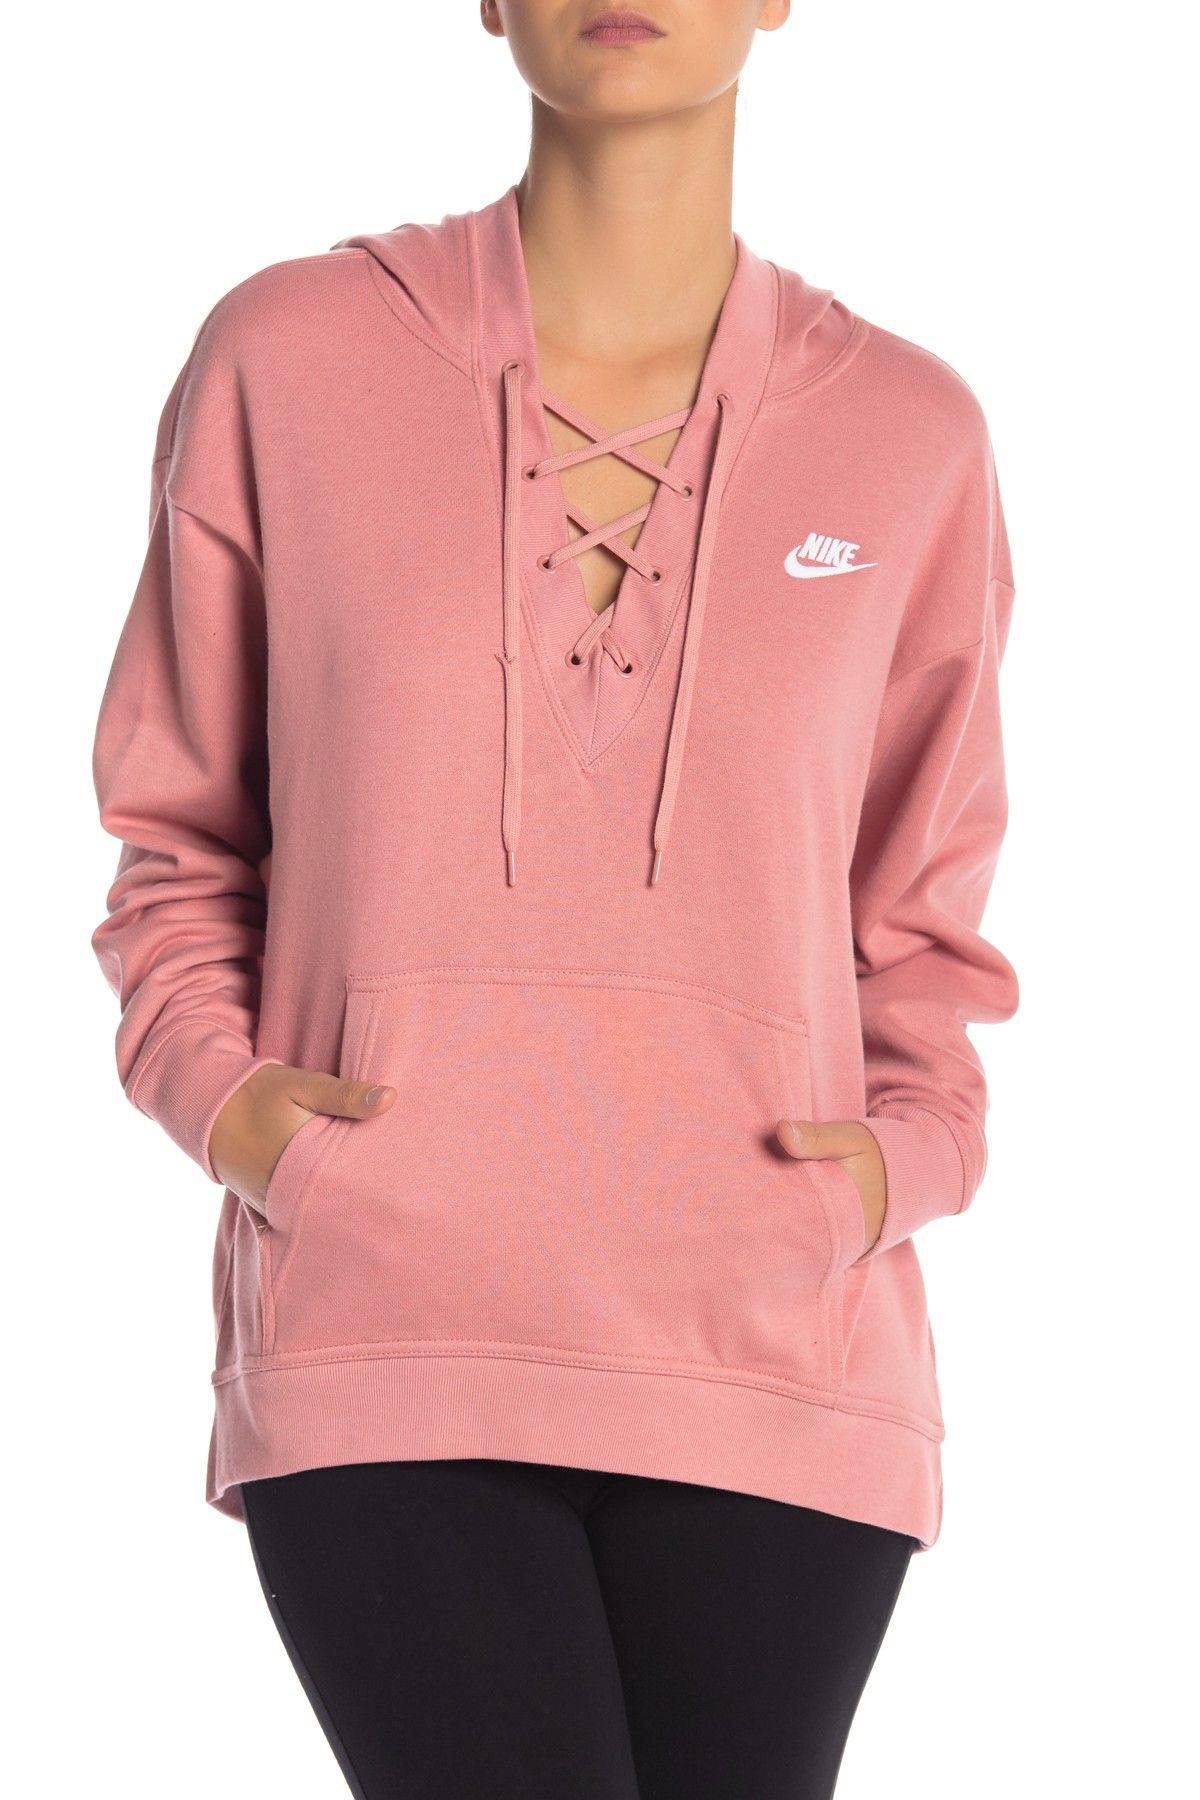 Nike | Club Lace Up Hoodie | Womens workout outfits, Fashion